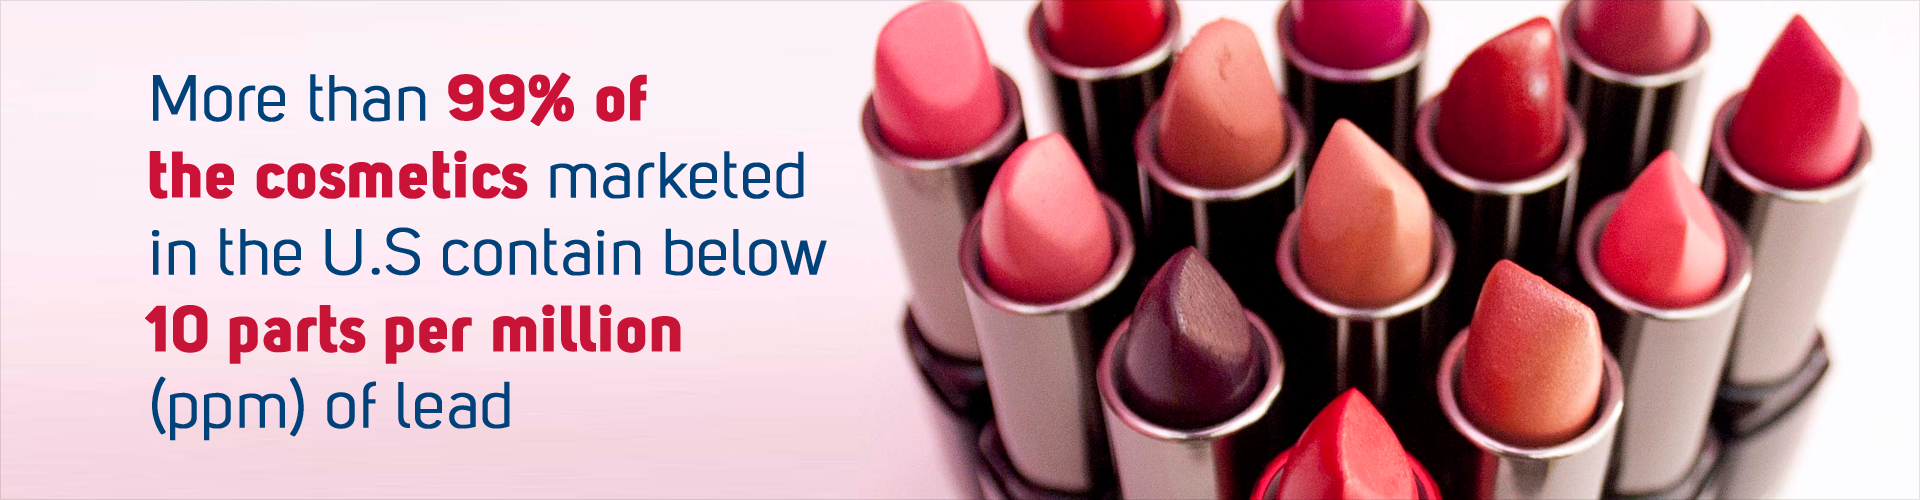 Limit Lead Levels in Lipsticks-FDA